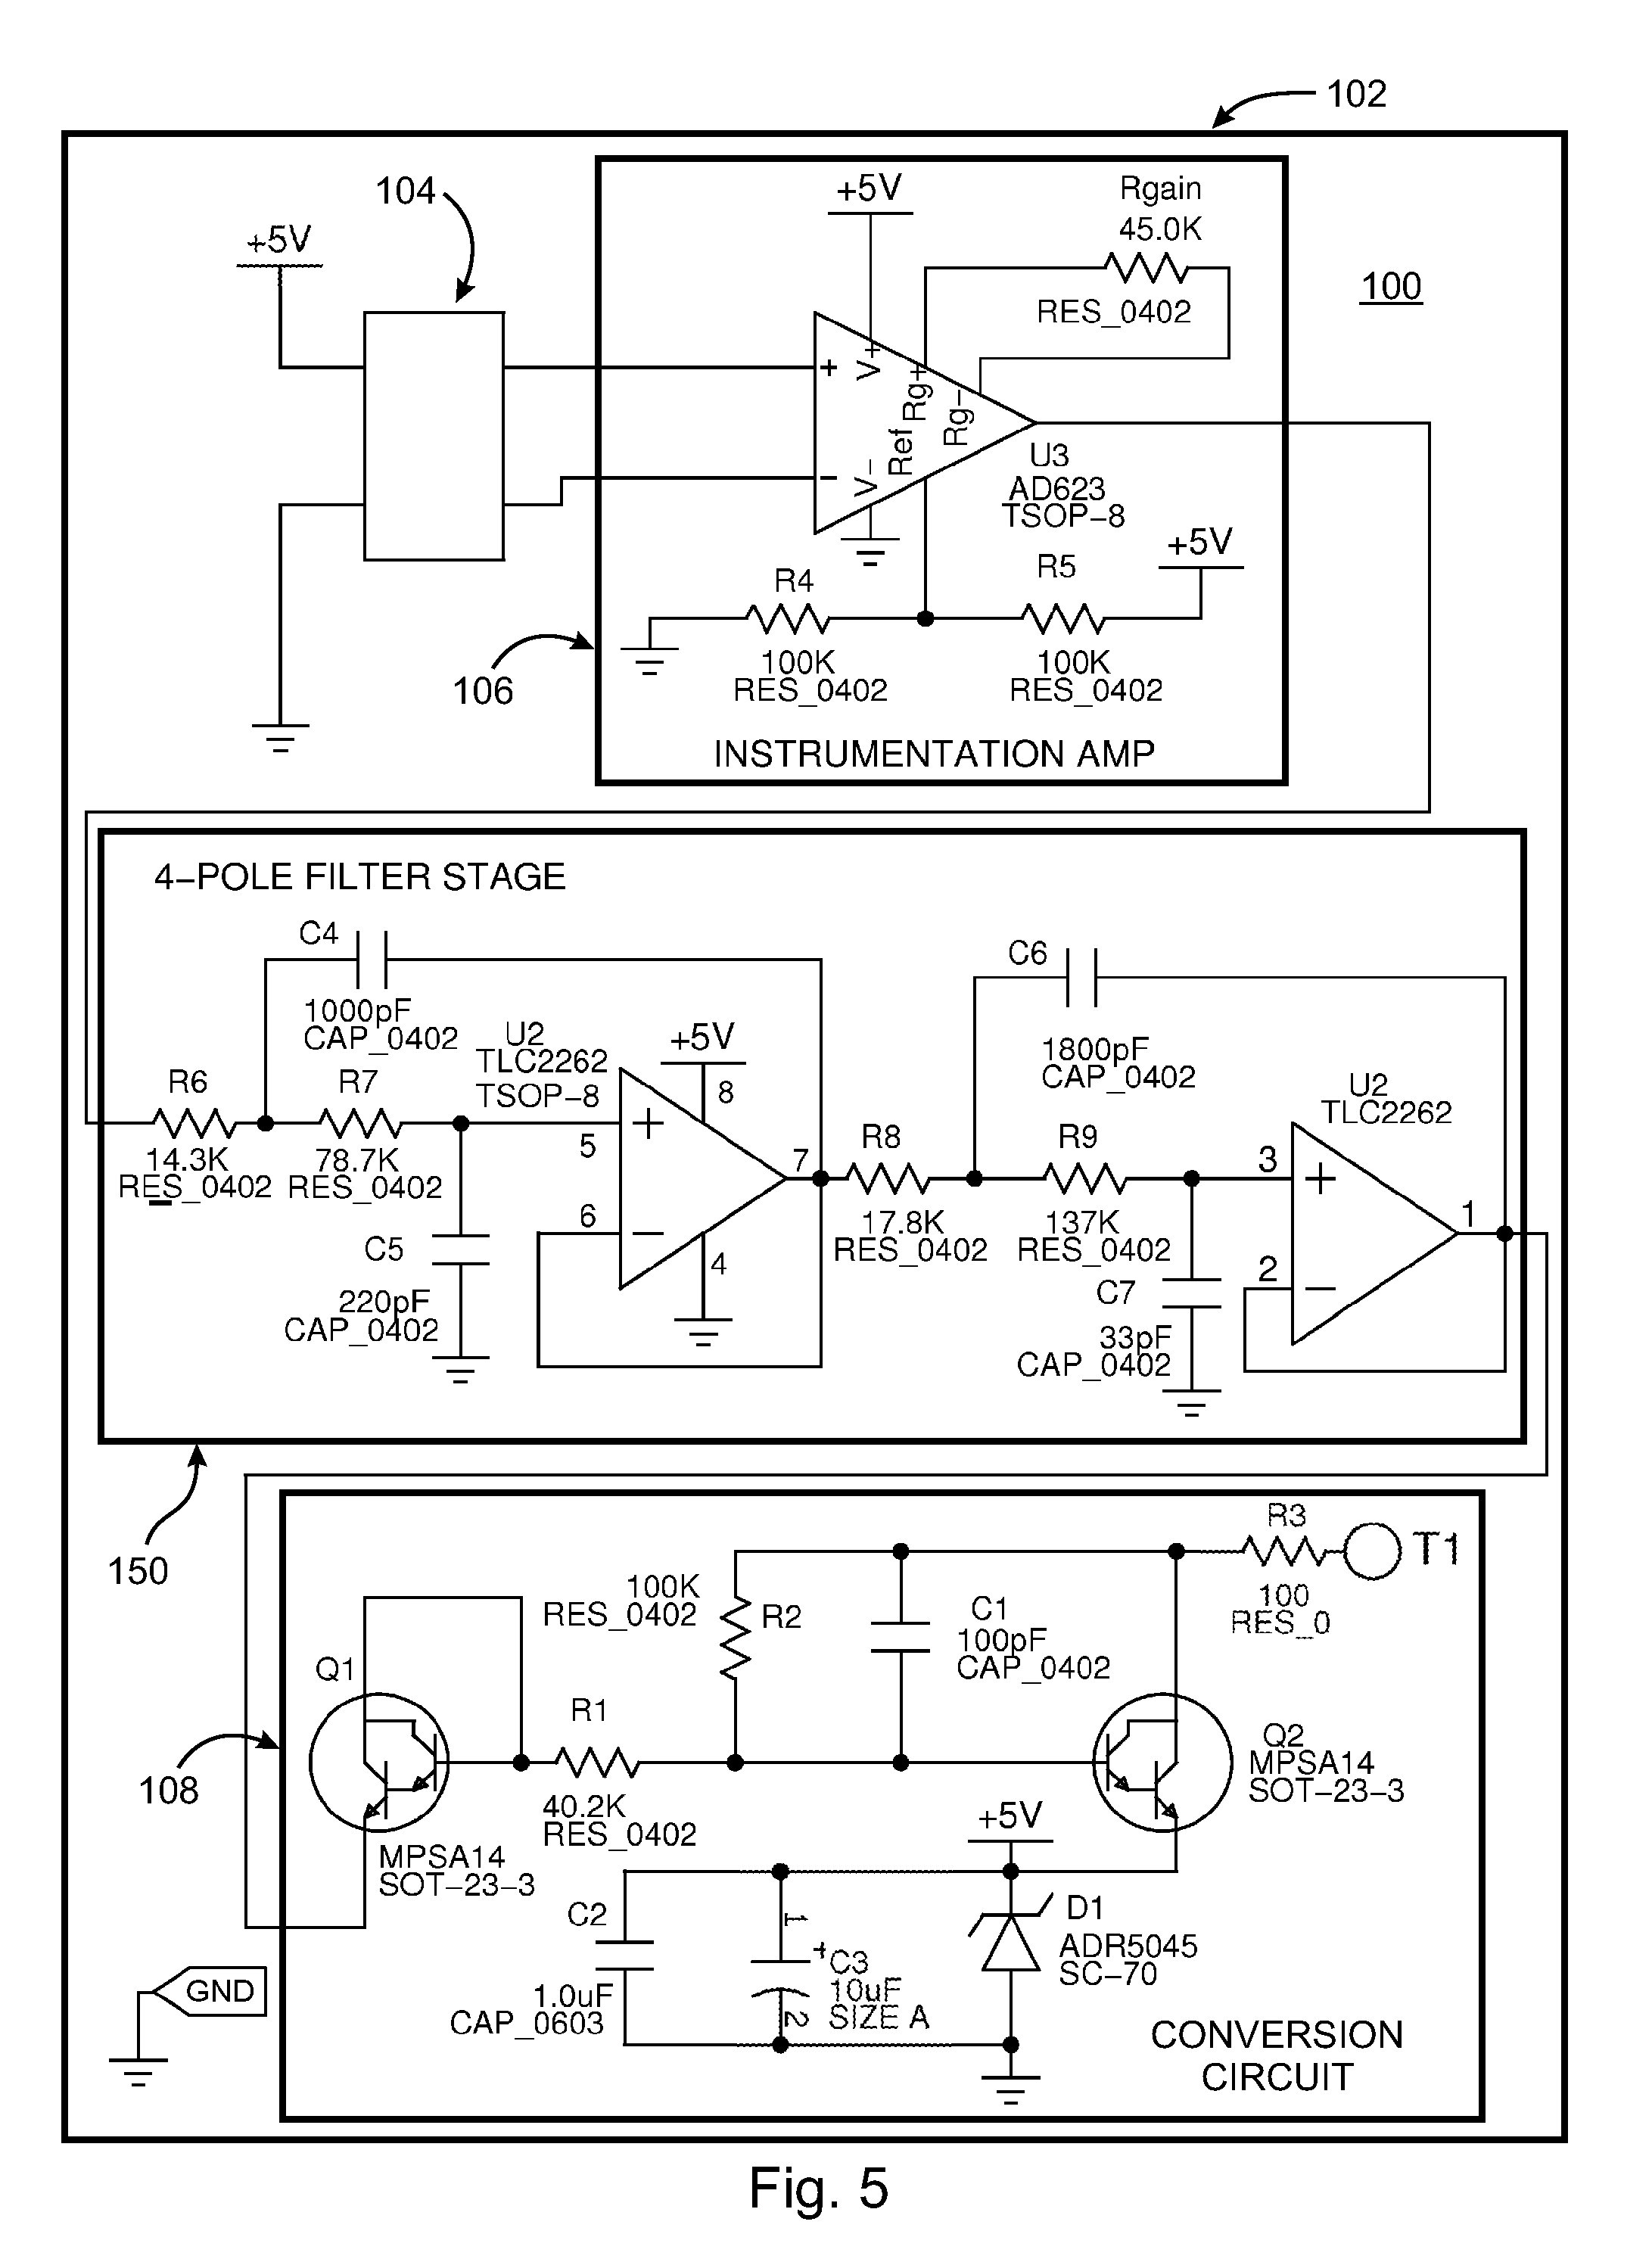 Piezoelectric Transducer Amplifier Circuit Manual Guide Wiring Patent Us8179121 Bridge Sensor With Collocated Electronics And Two Wire Interface Google Diagram 4 Pin